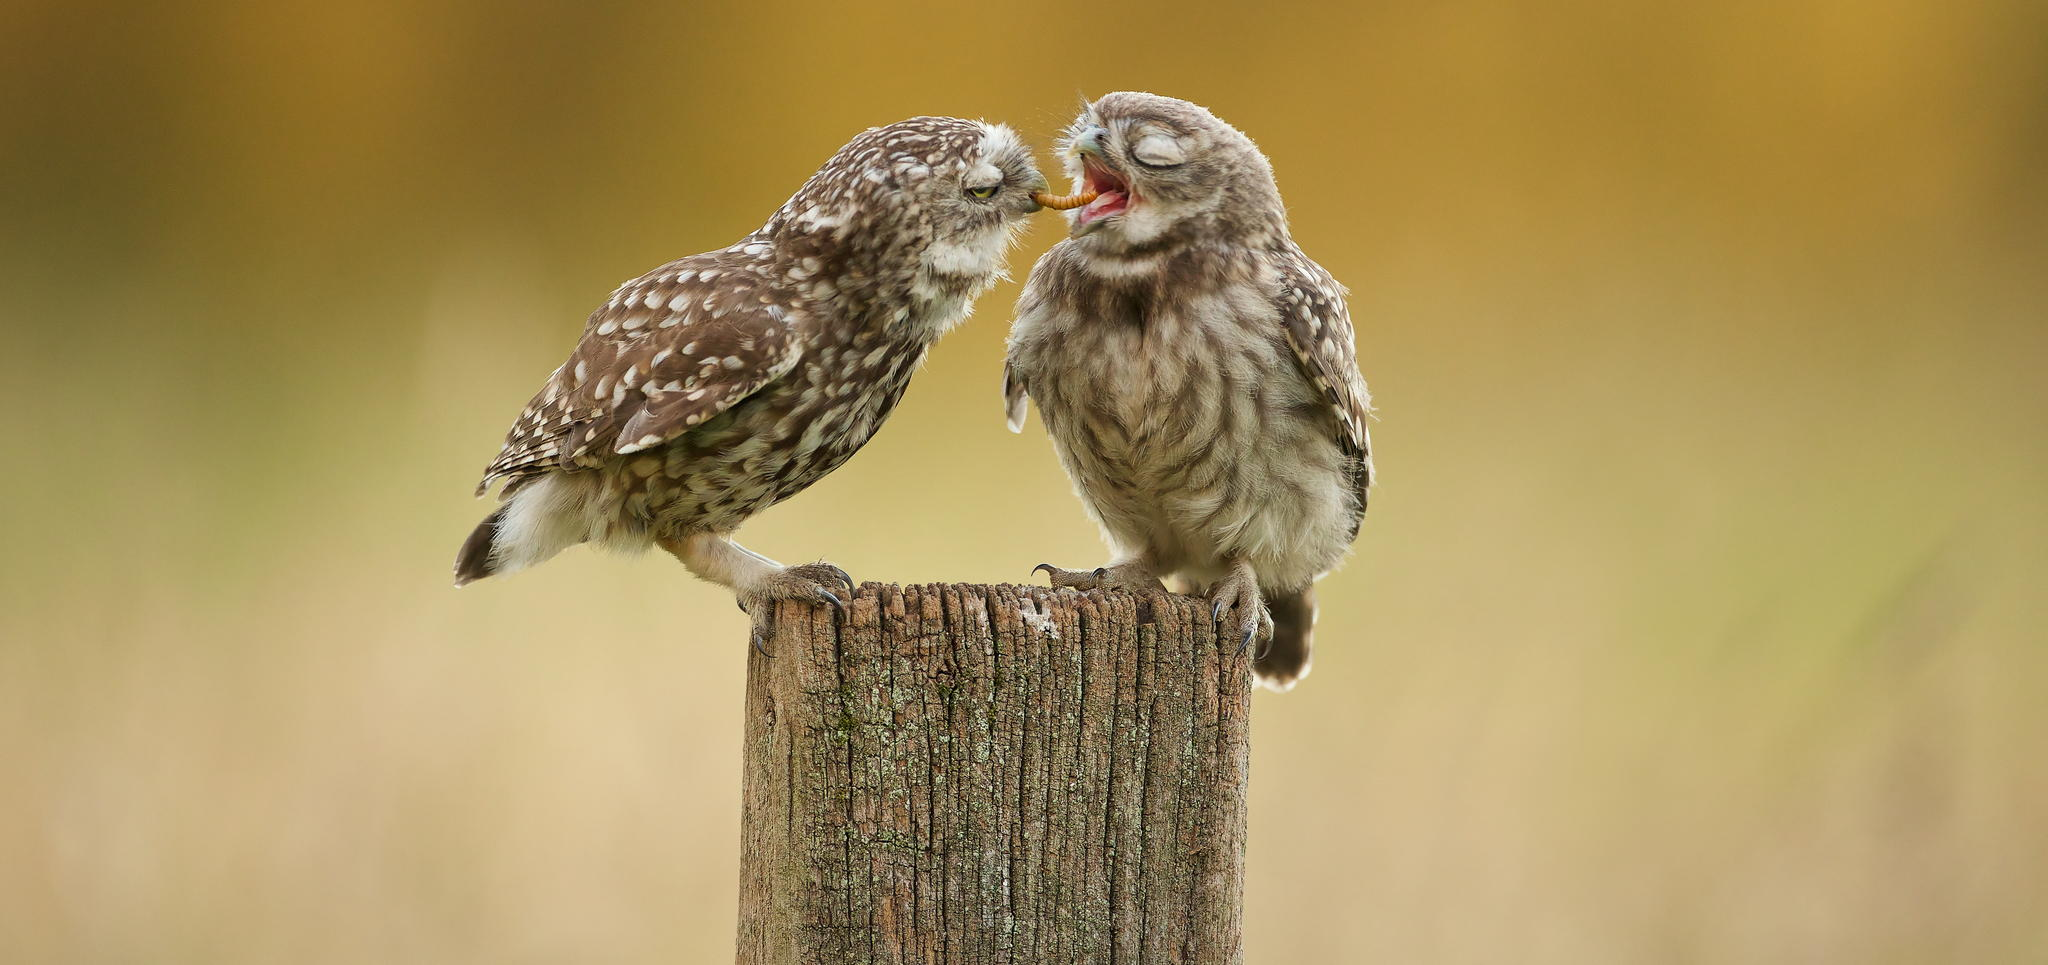 What's The Story Behind This Cute Photo Of Little Owls Sharing Grub?